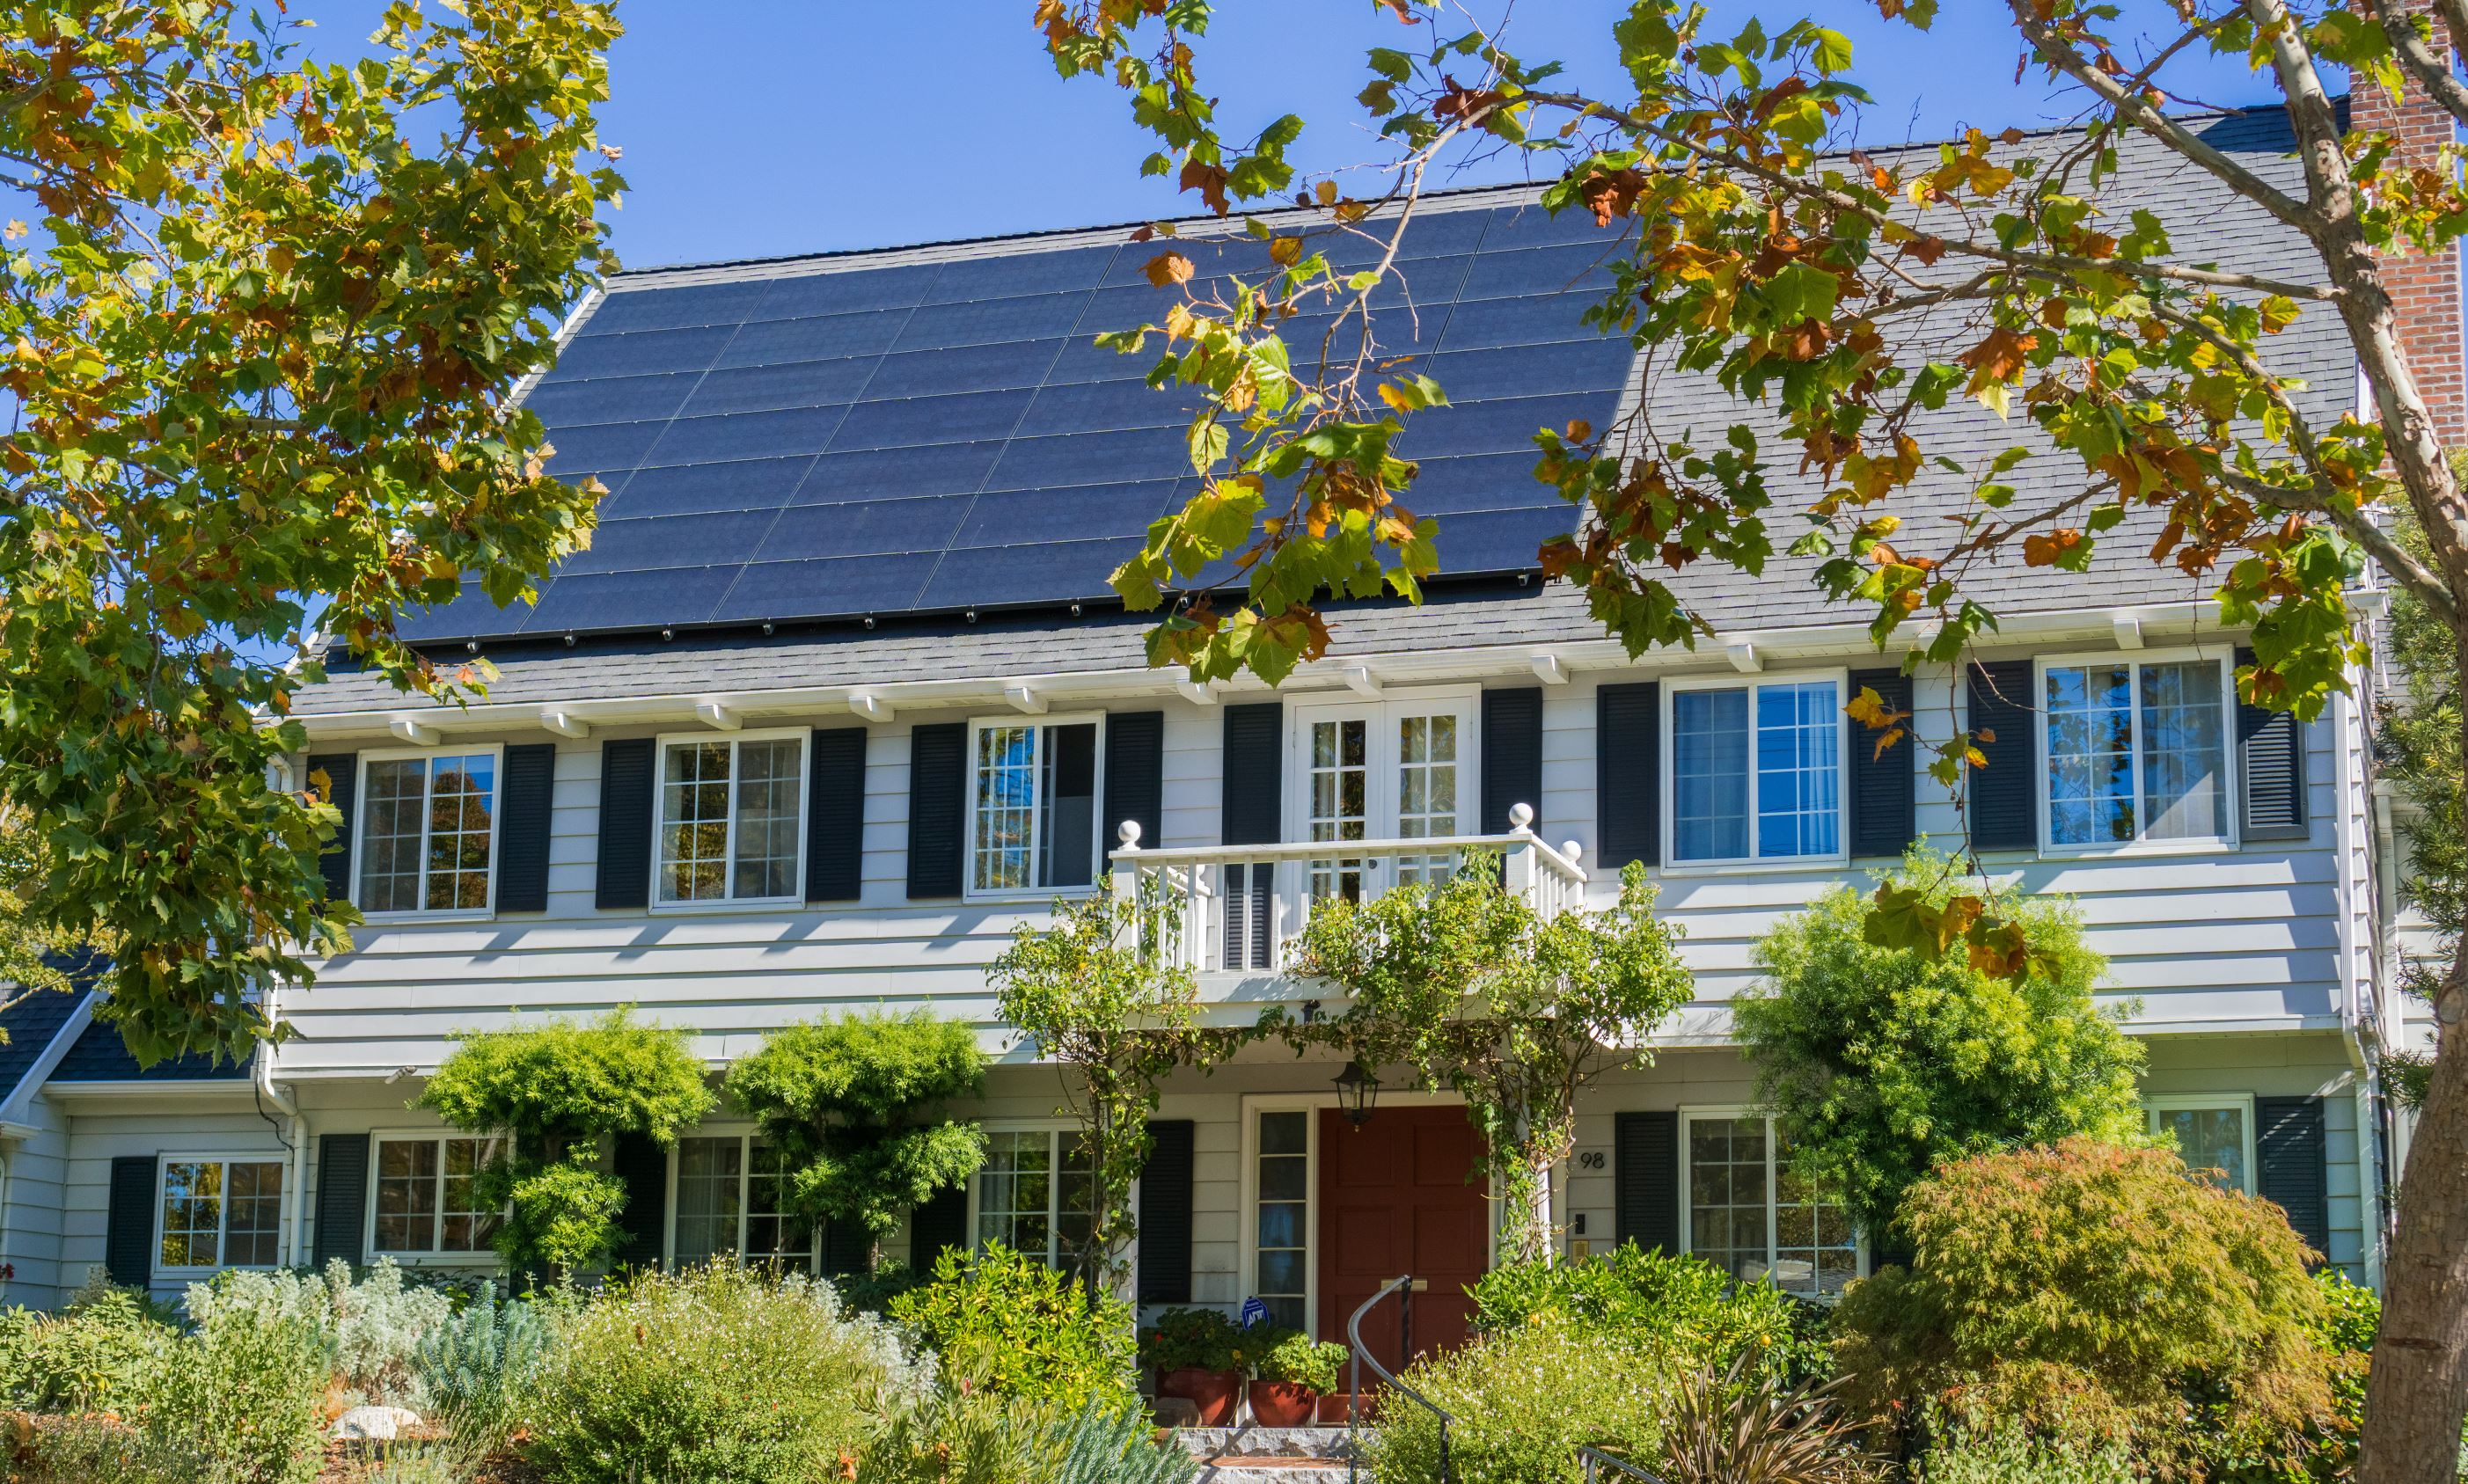 A home with solar panels installed